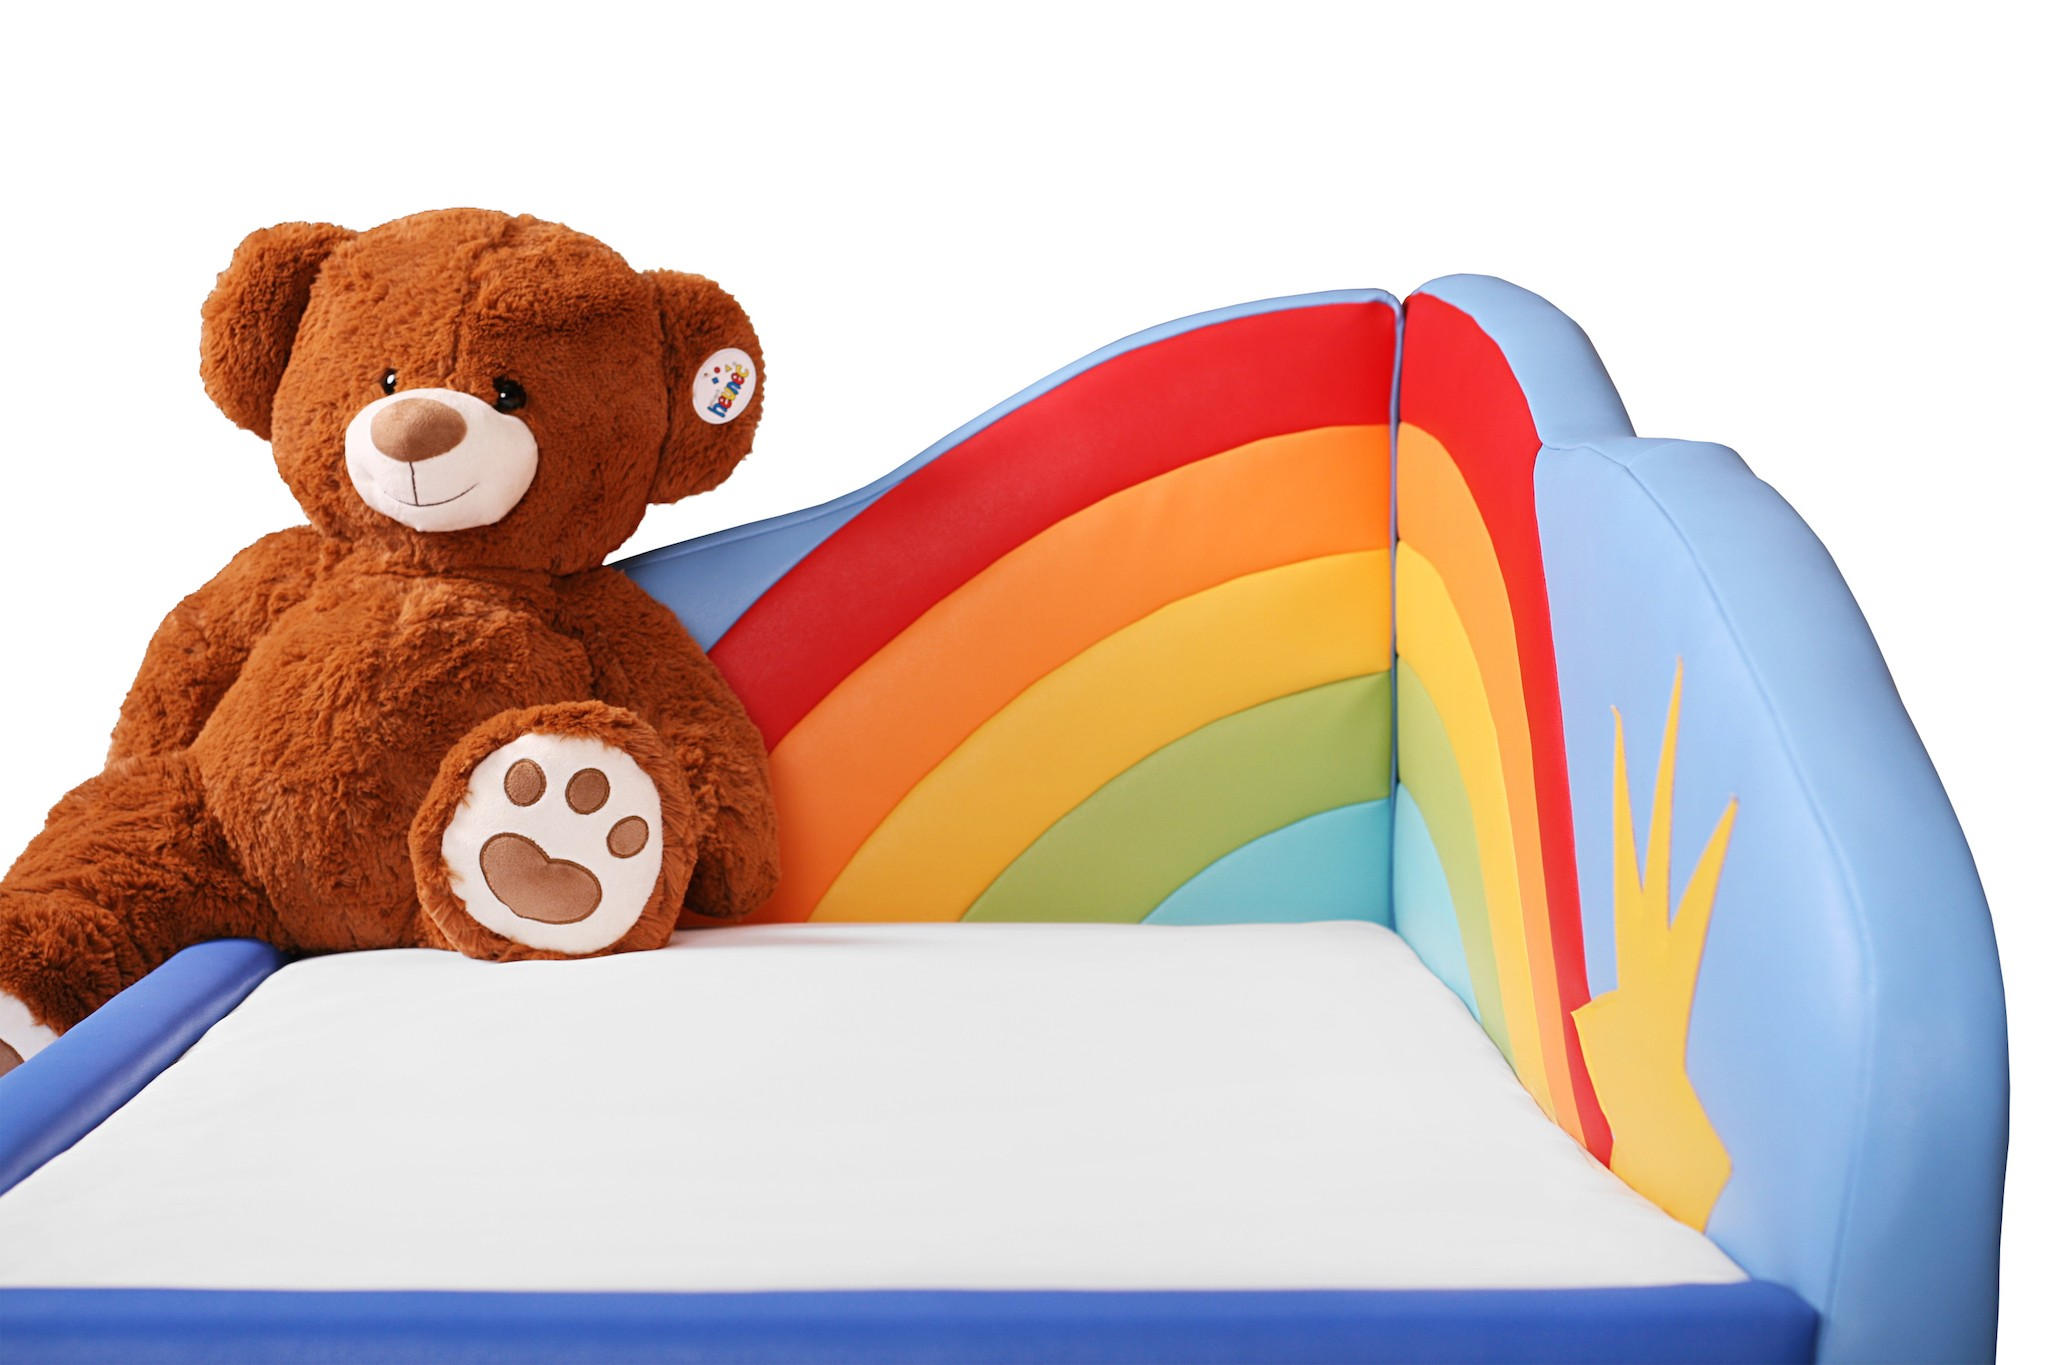 kinderbett tomto motiv regenbogen inkl matratze und lattenrost kinderzimmer m bel kinderbett. Black Bedroom Furniture Sets. Home Design Ideas